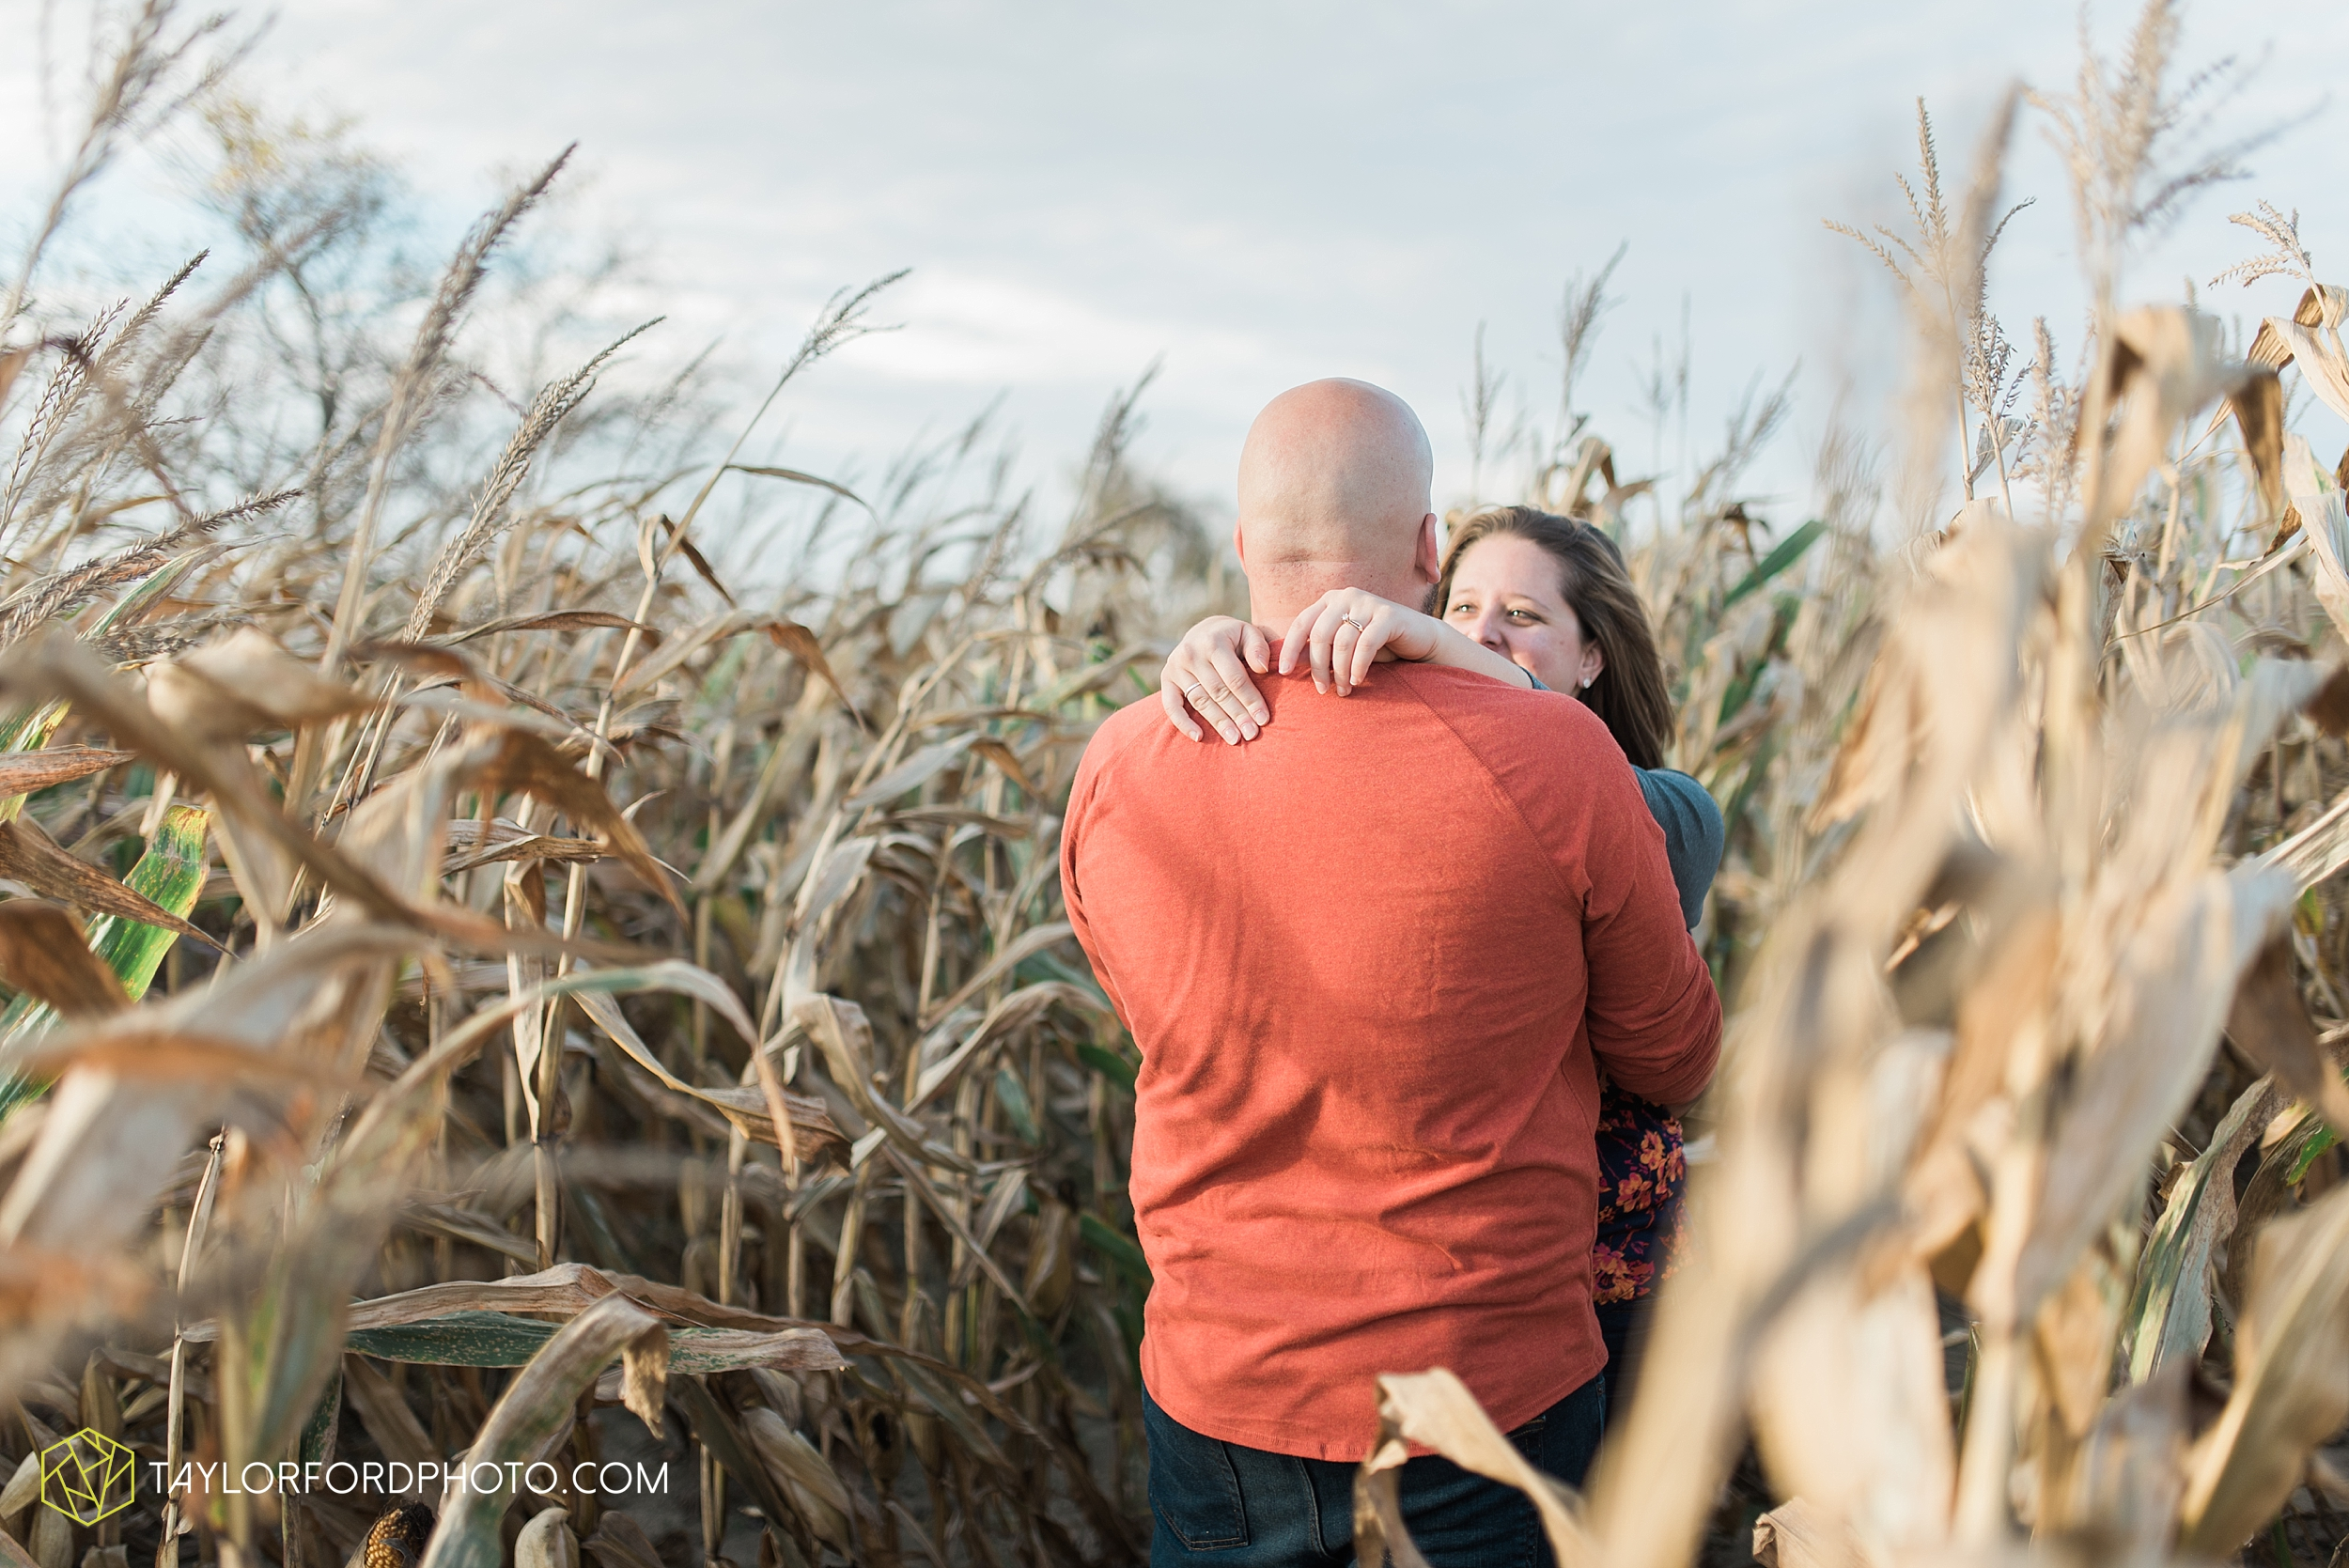 van-wert-ohio-engagement-wedding-photographer-Taylor-Ford-Photography-fall-farm-nature_4156.jpg